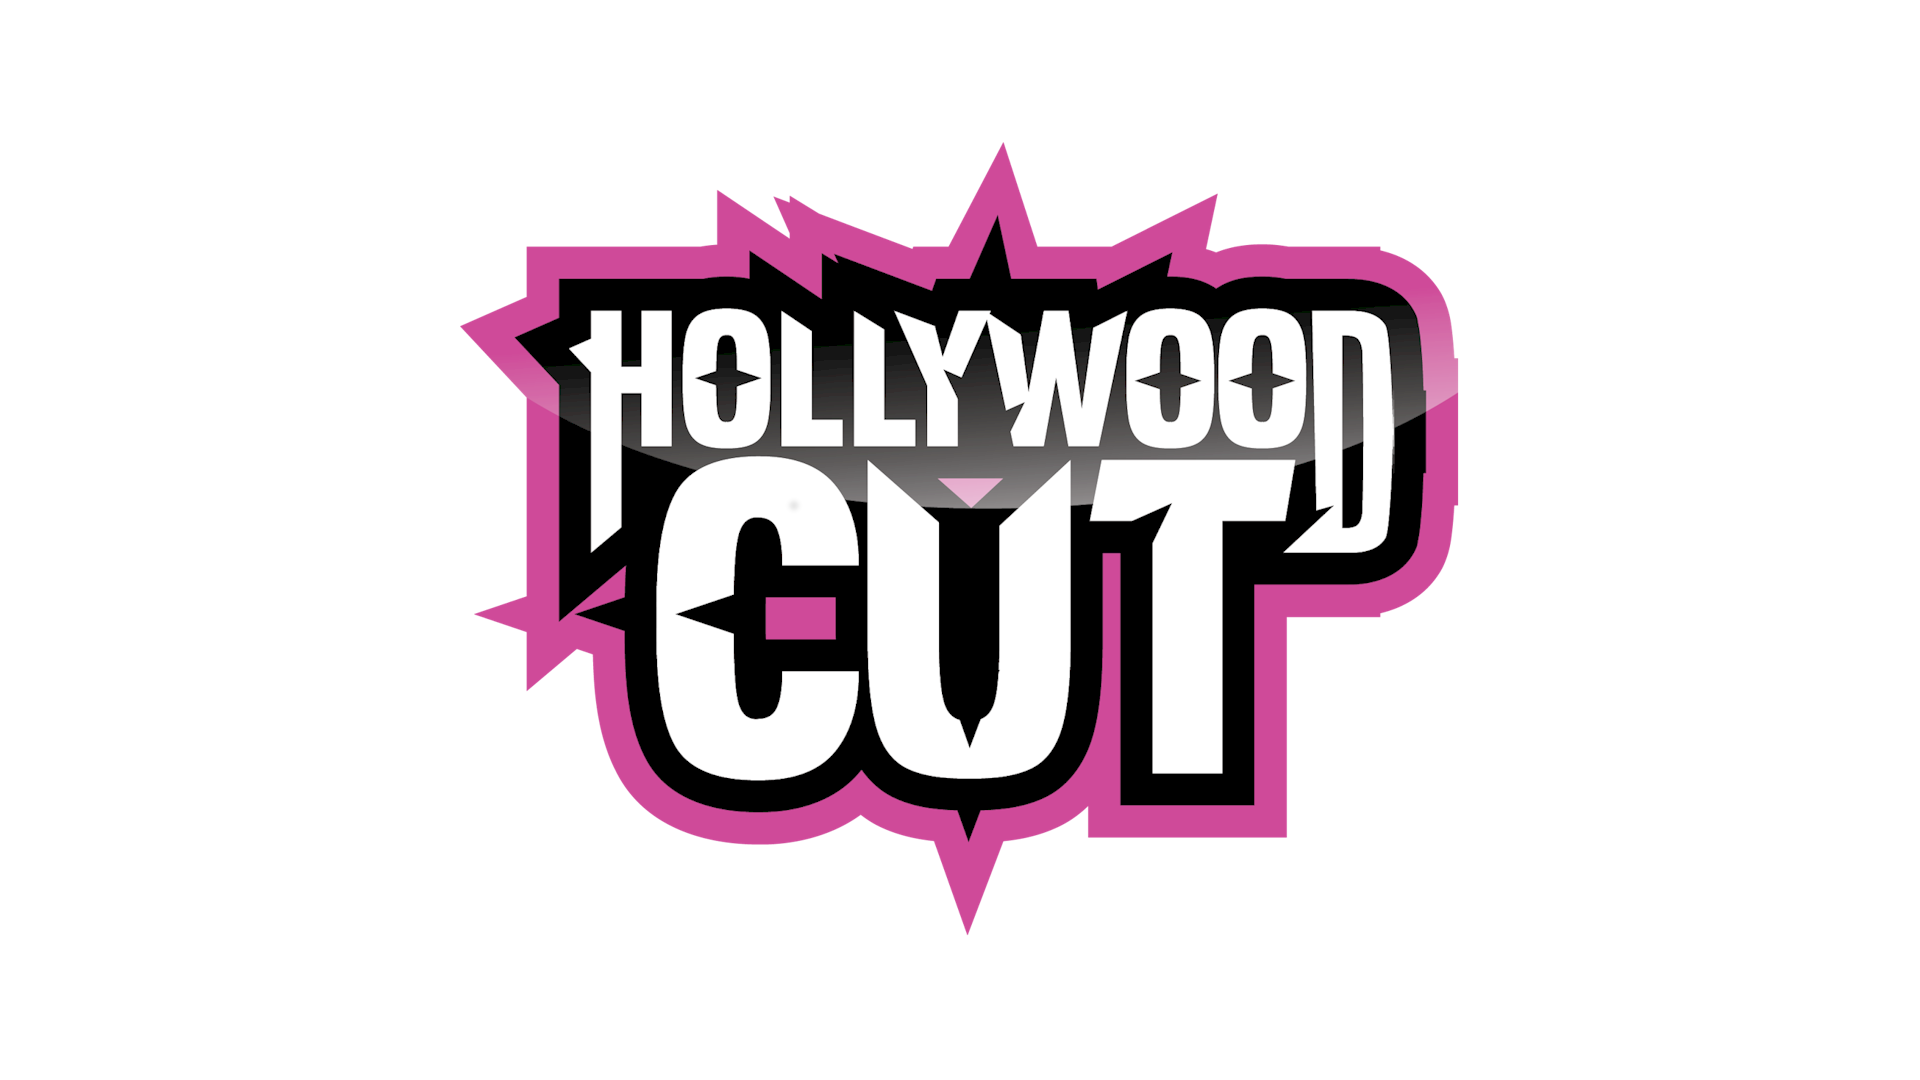 HOLLYWOOD-CUT